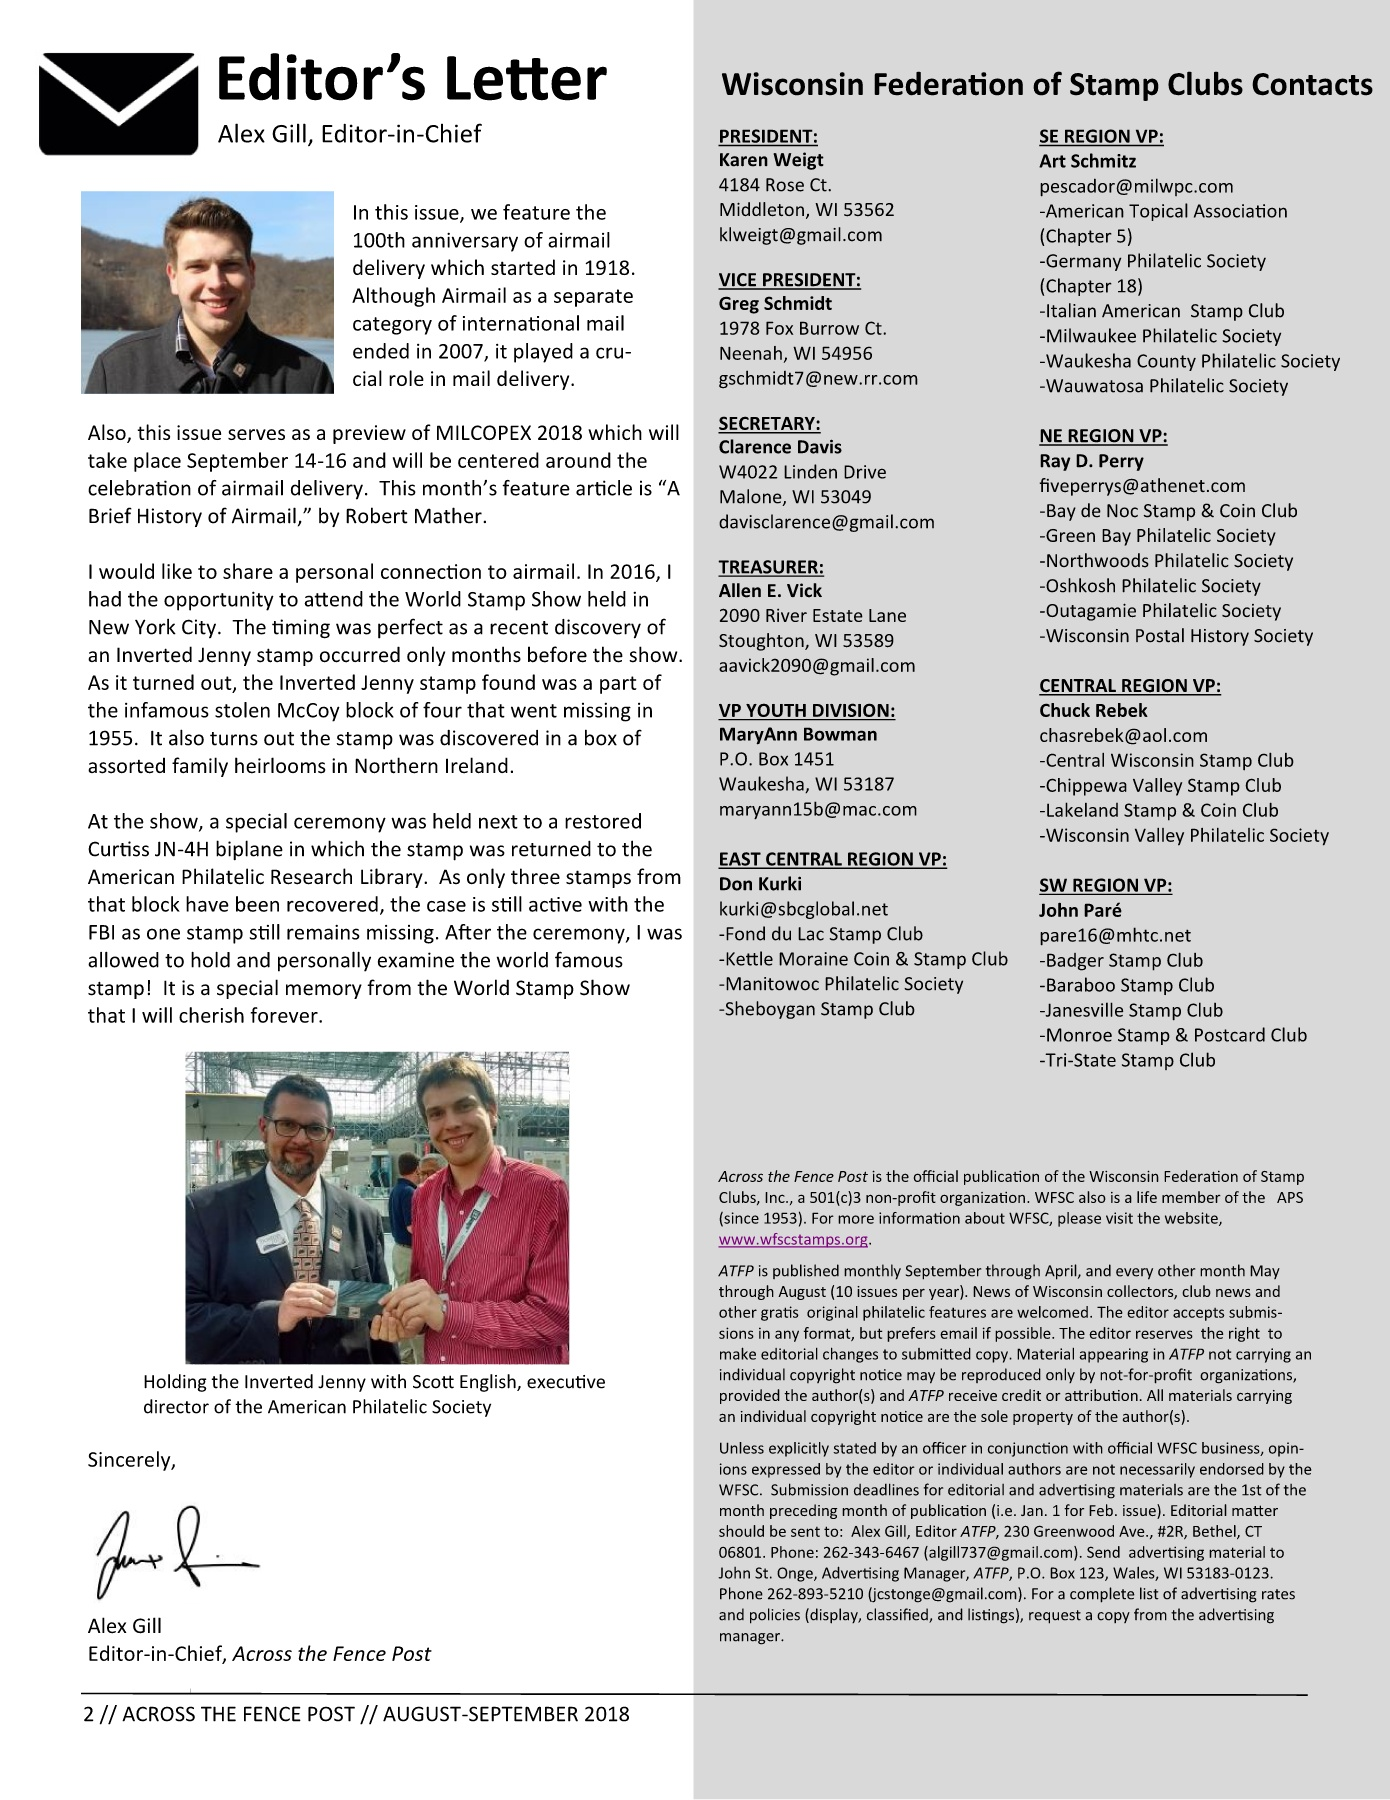 ATFP August-September 2018 Pages 1 - 12 - Text Version   AnyFlip